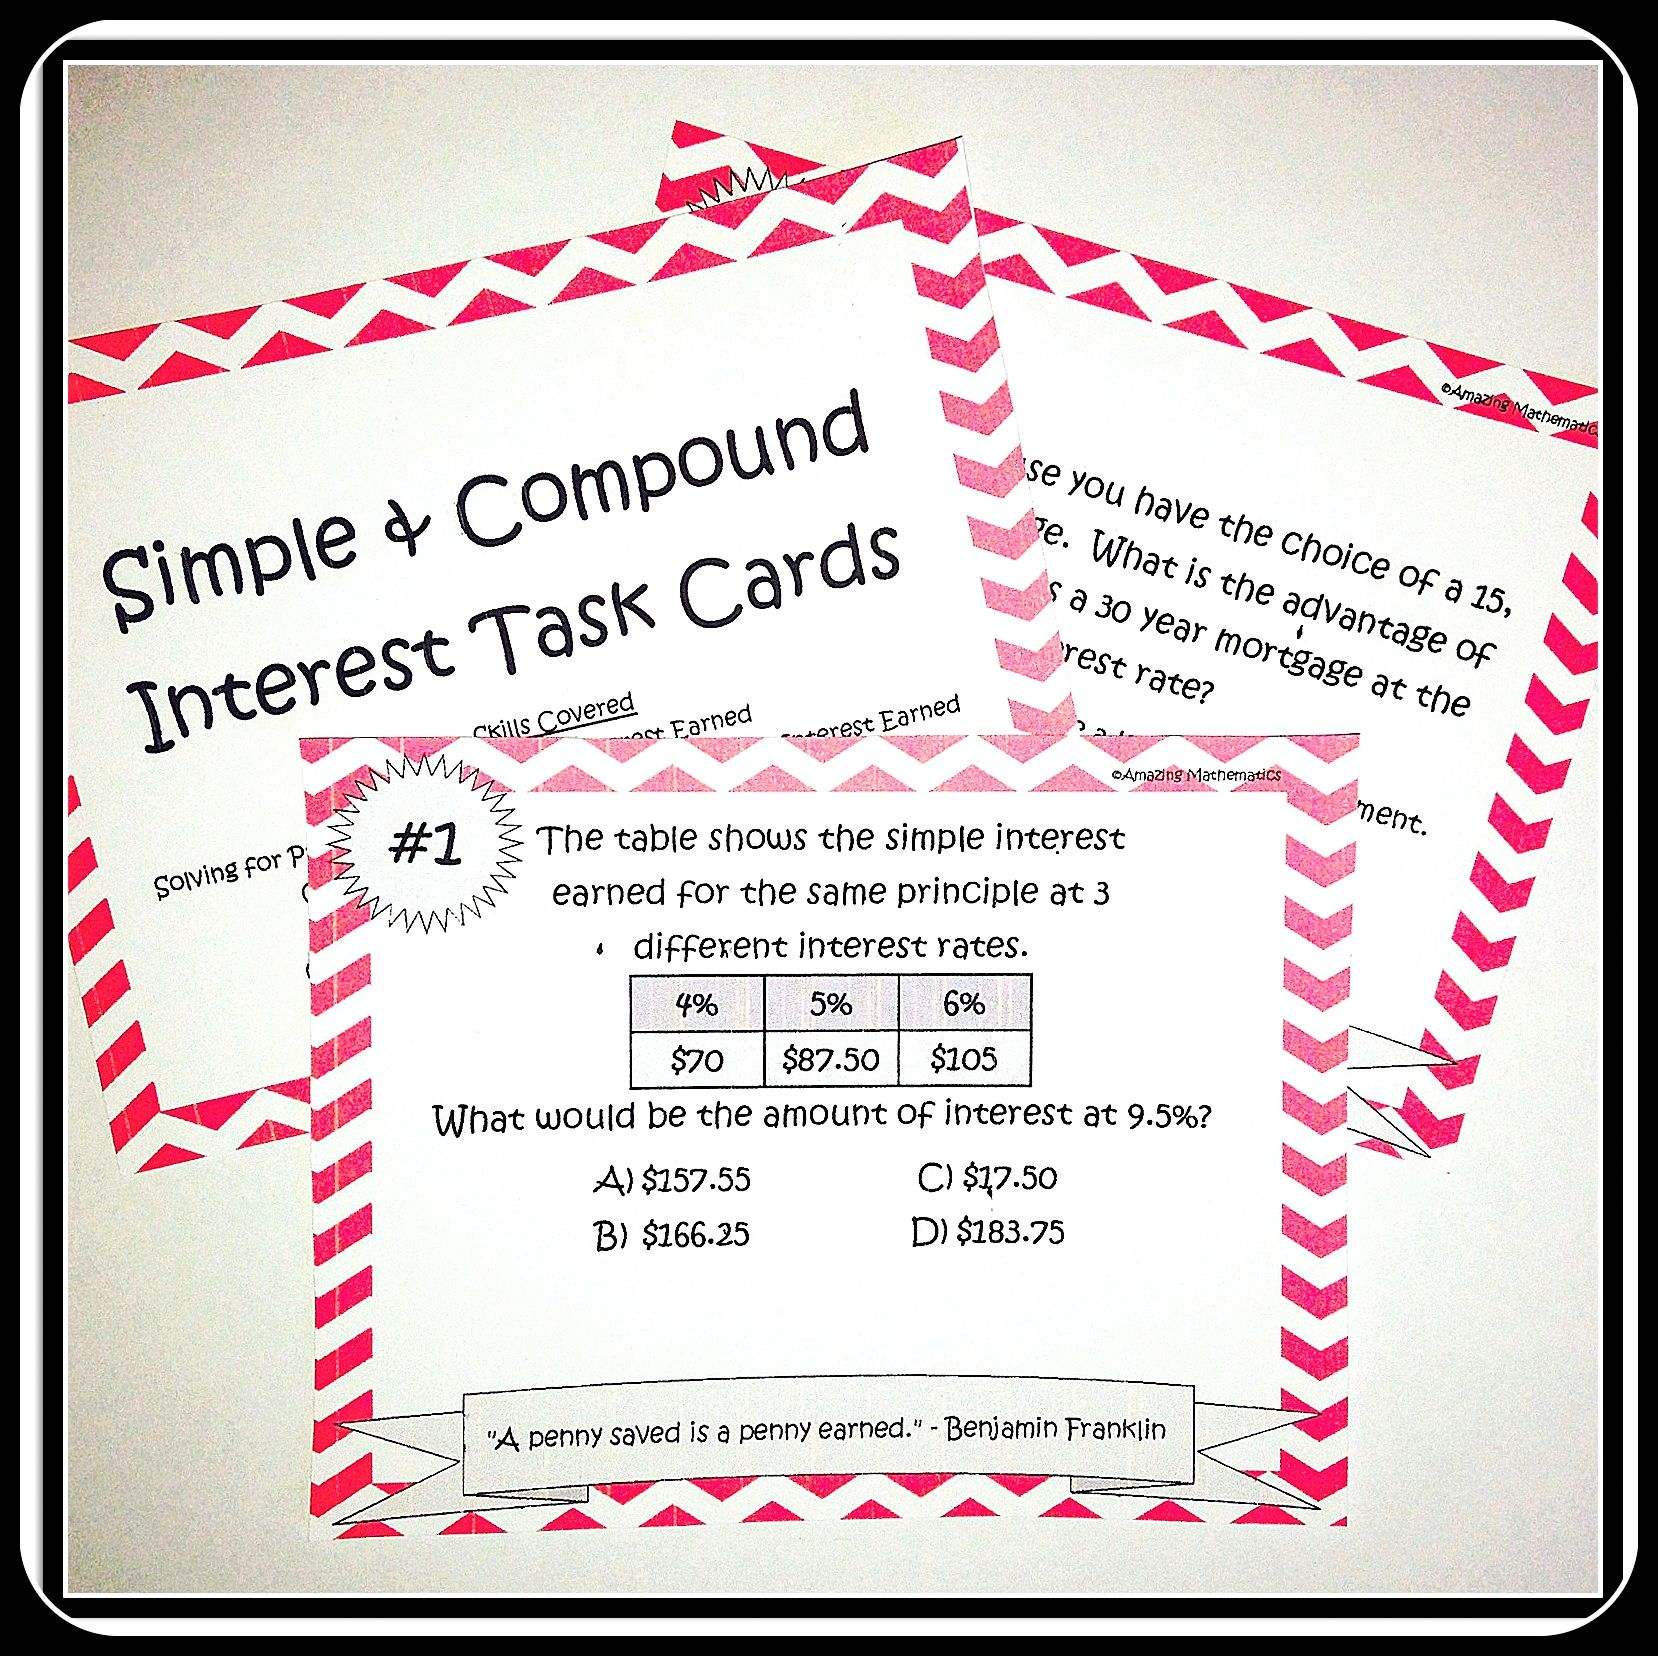 Simple Amp Compound Interest Task Cards